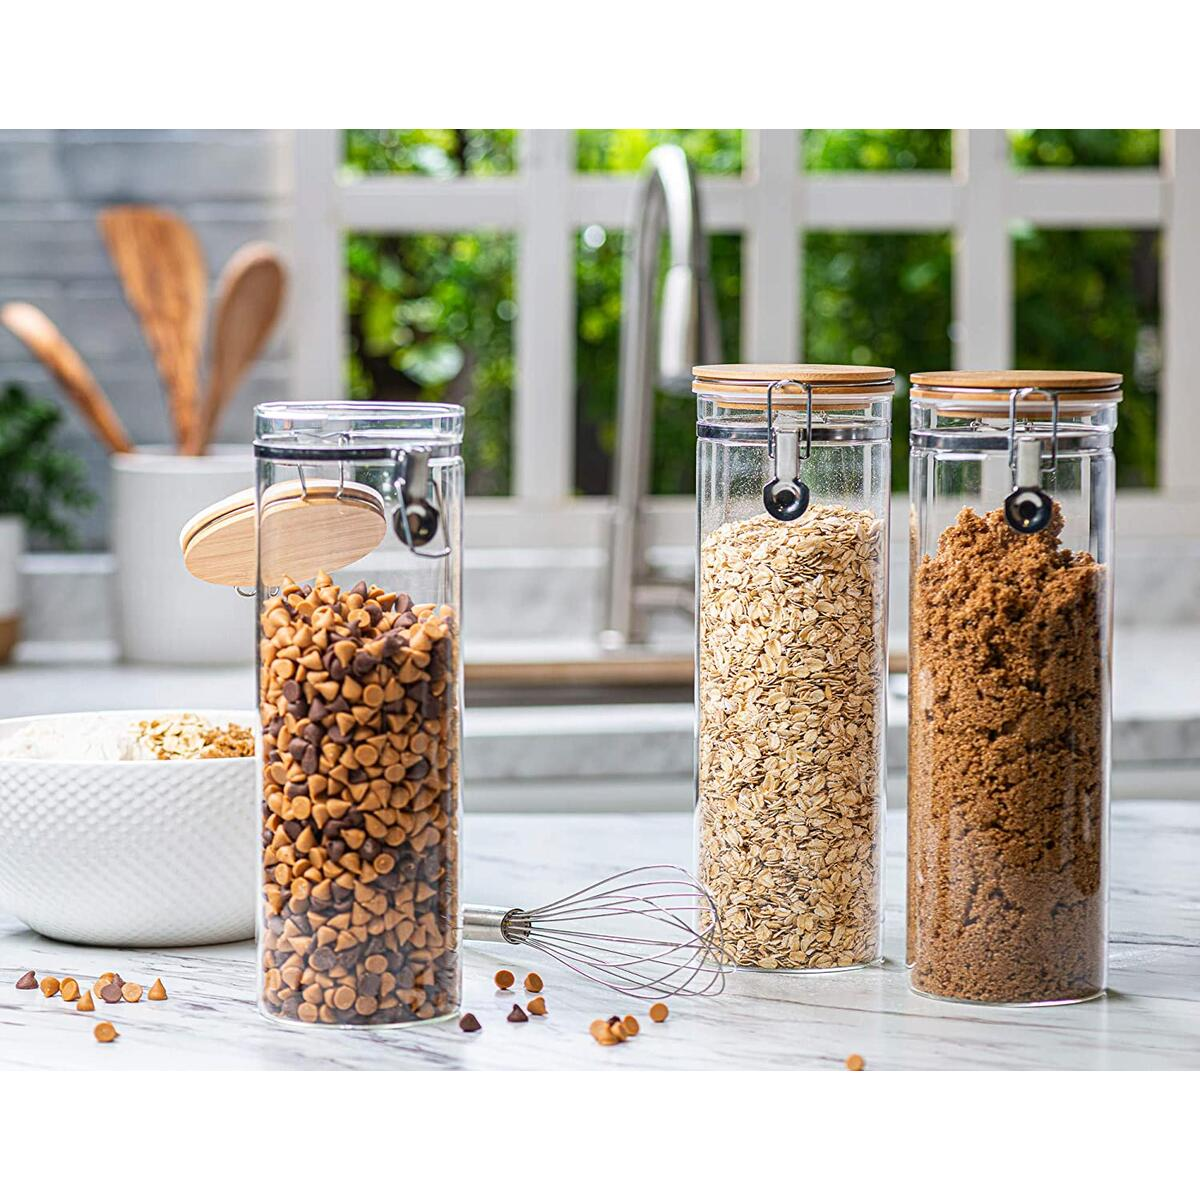 Set of 3 Tall Canisters, Glass Kitchen Canister with Airtight Bamboo Clamp Lid, Glass Storage Jars for Kitchen, Bathroom and Pantry Organization Ideal for Flour, Cereal, Sugar, Coffee, Candy and More…